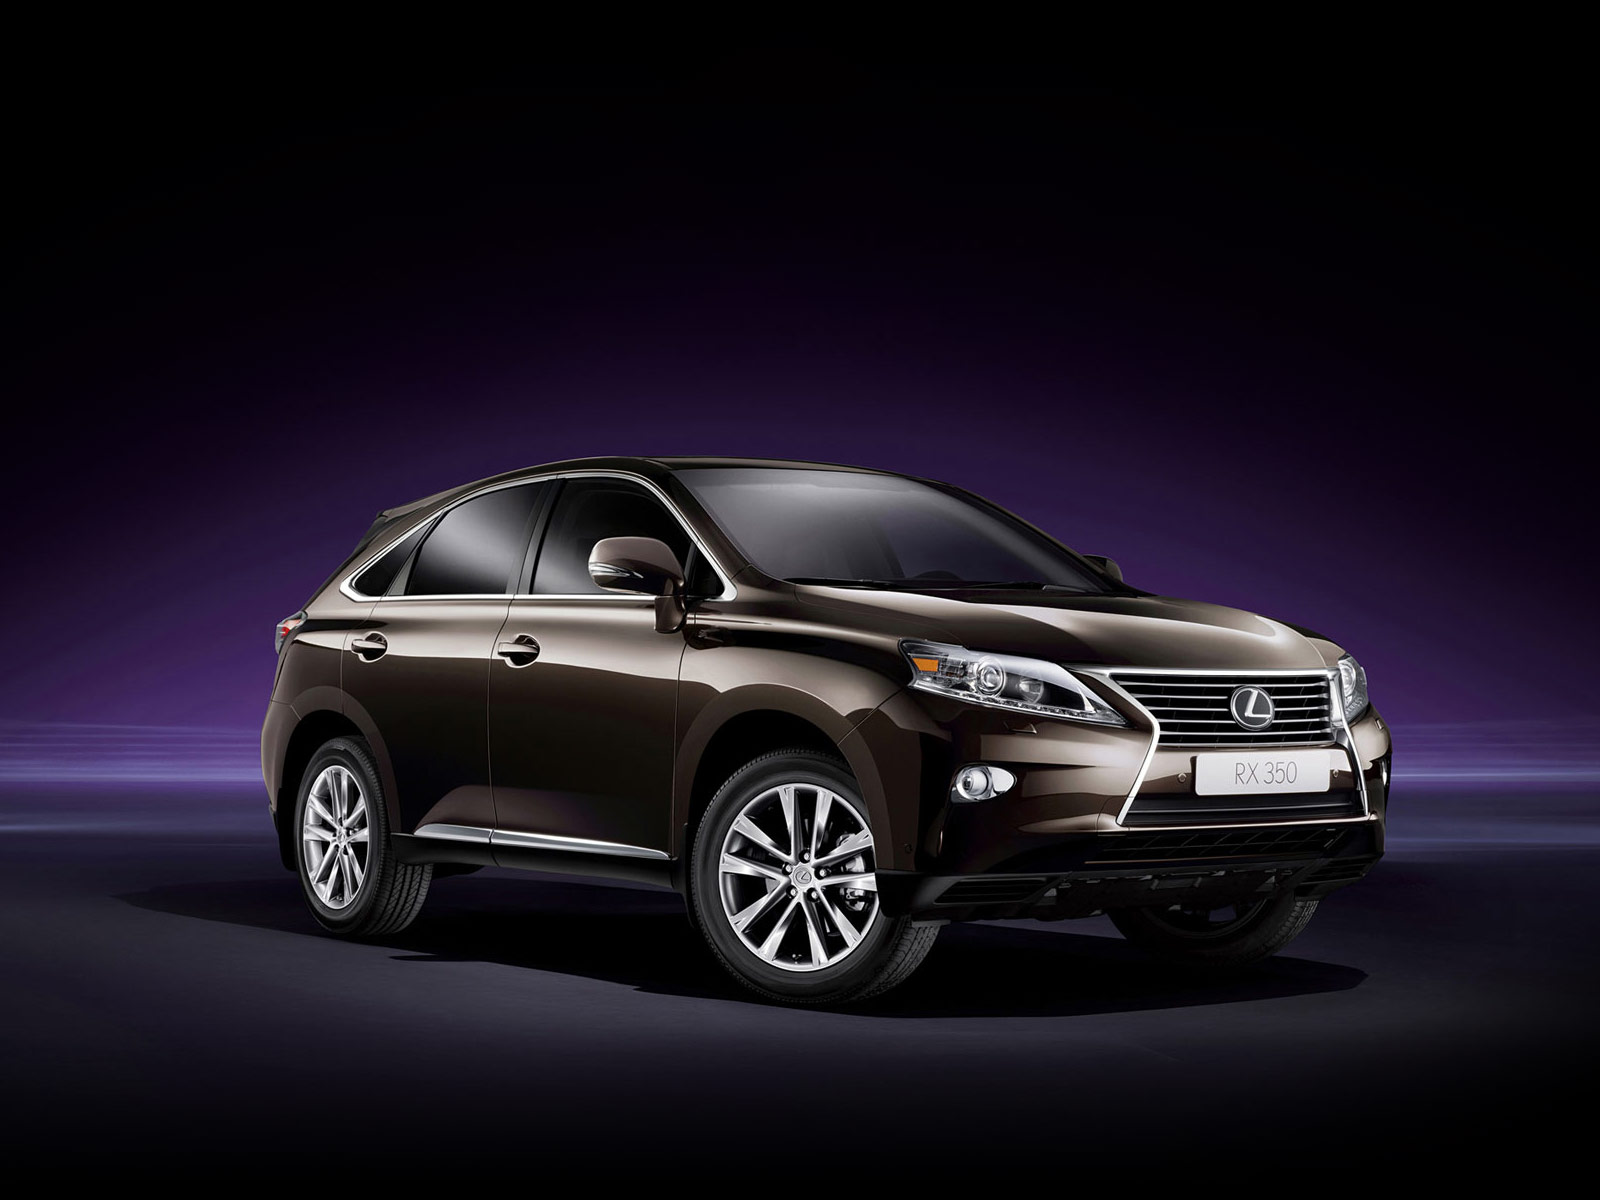 2013 lexus rx 350 japanese car photos. Black Bedroom Furniture Sets. Home Design Ideas